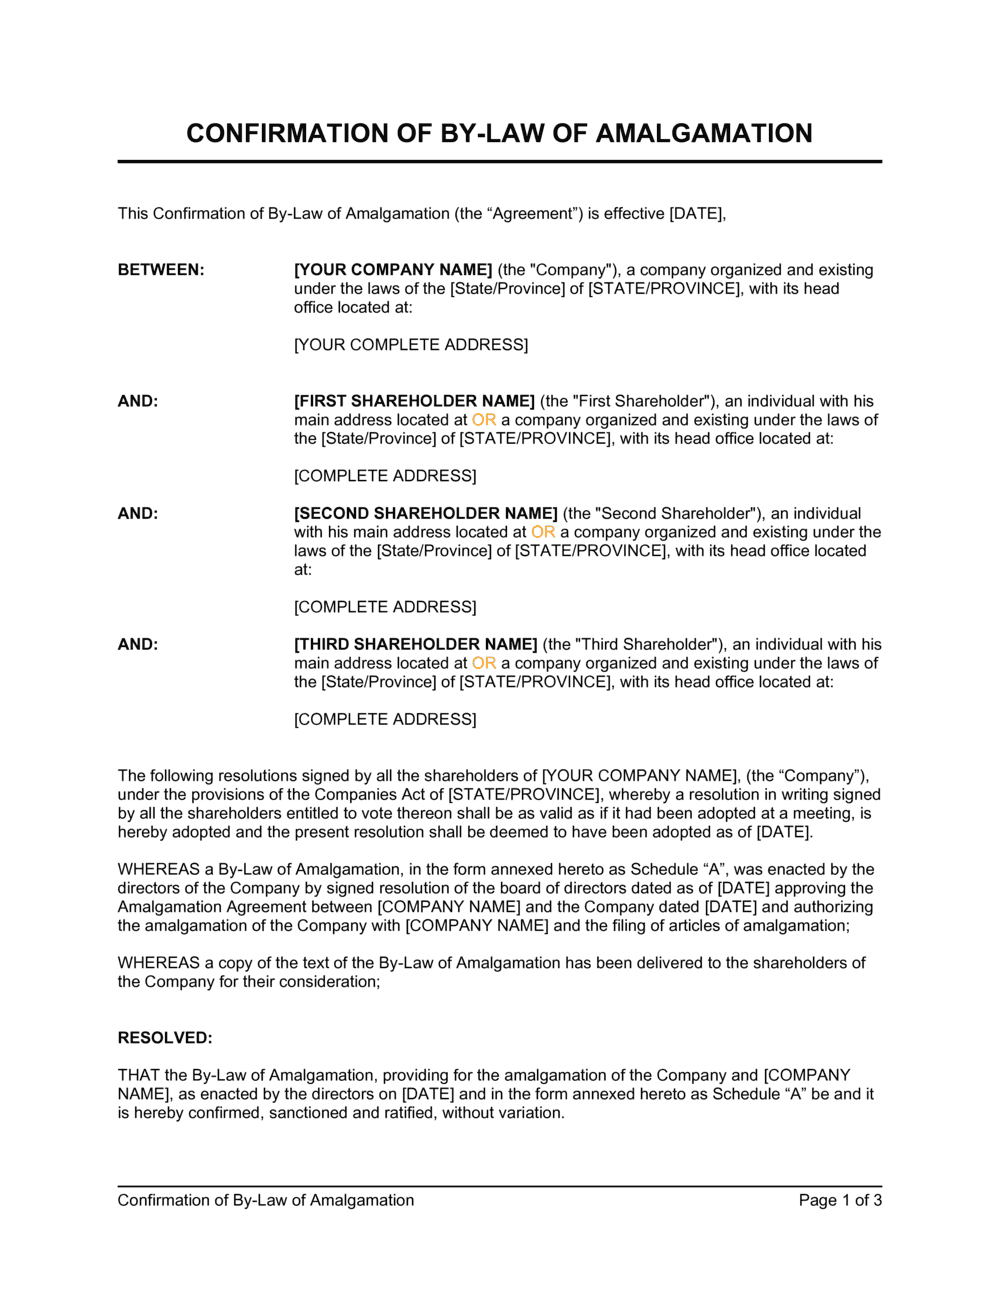 Business-in-a-Box's Confirmation of By-Law of Amalgamation Template